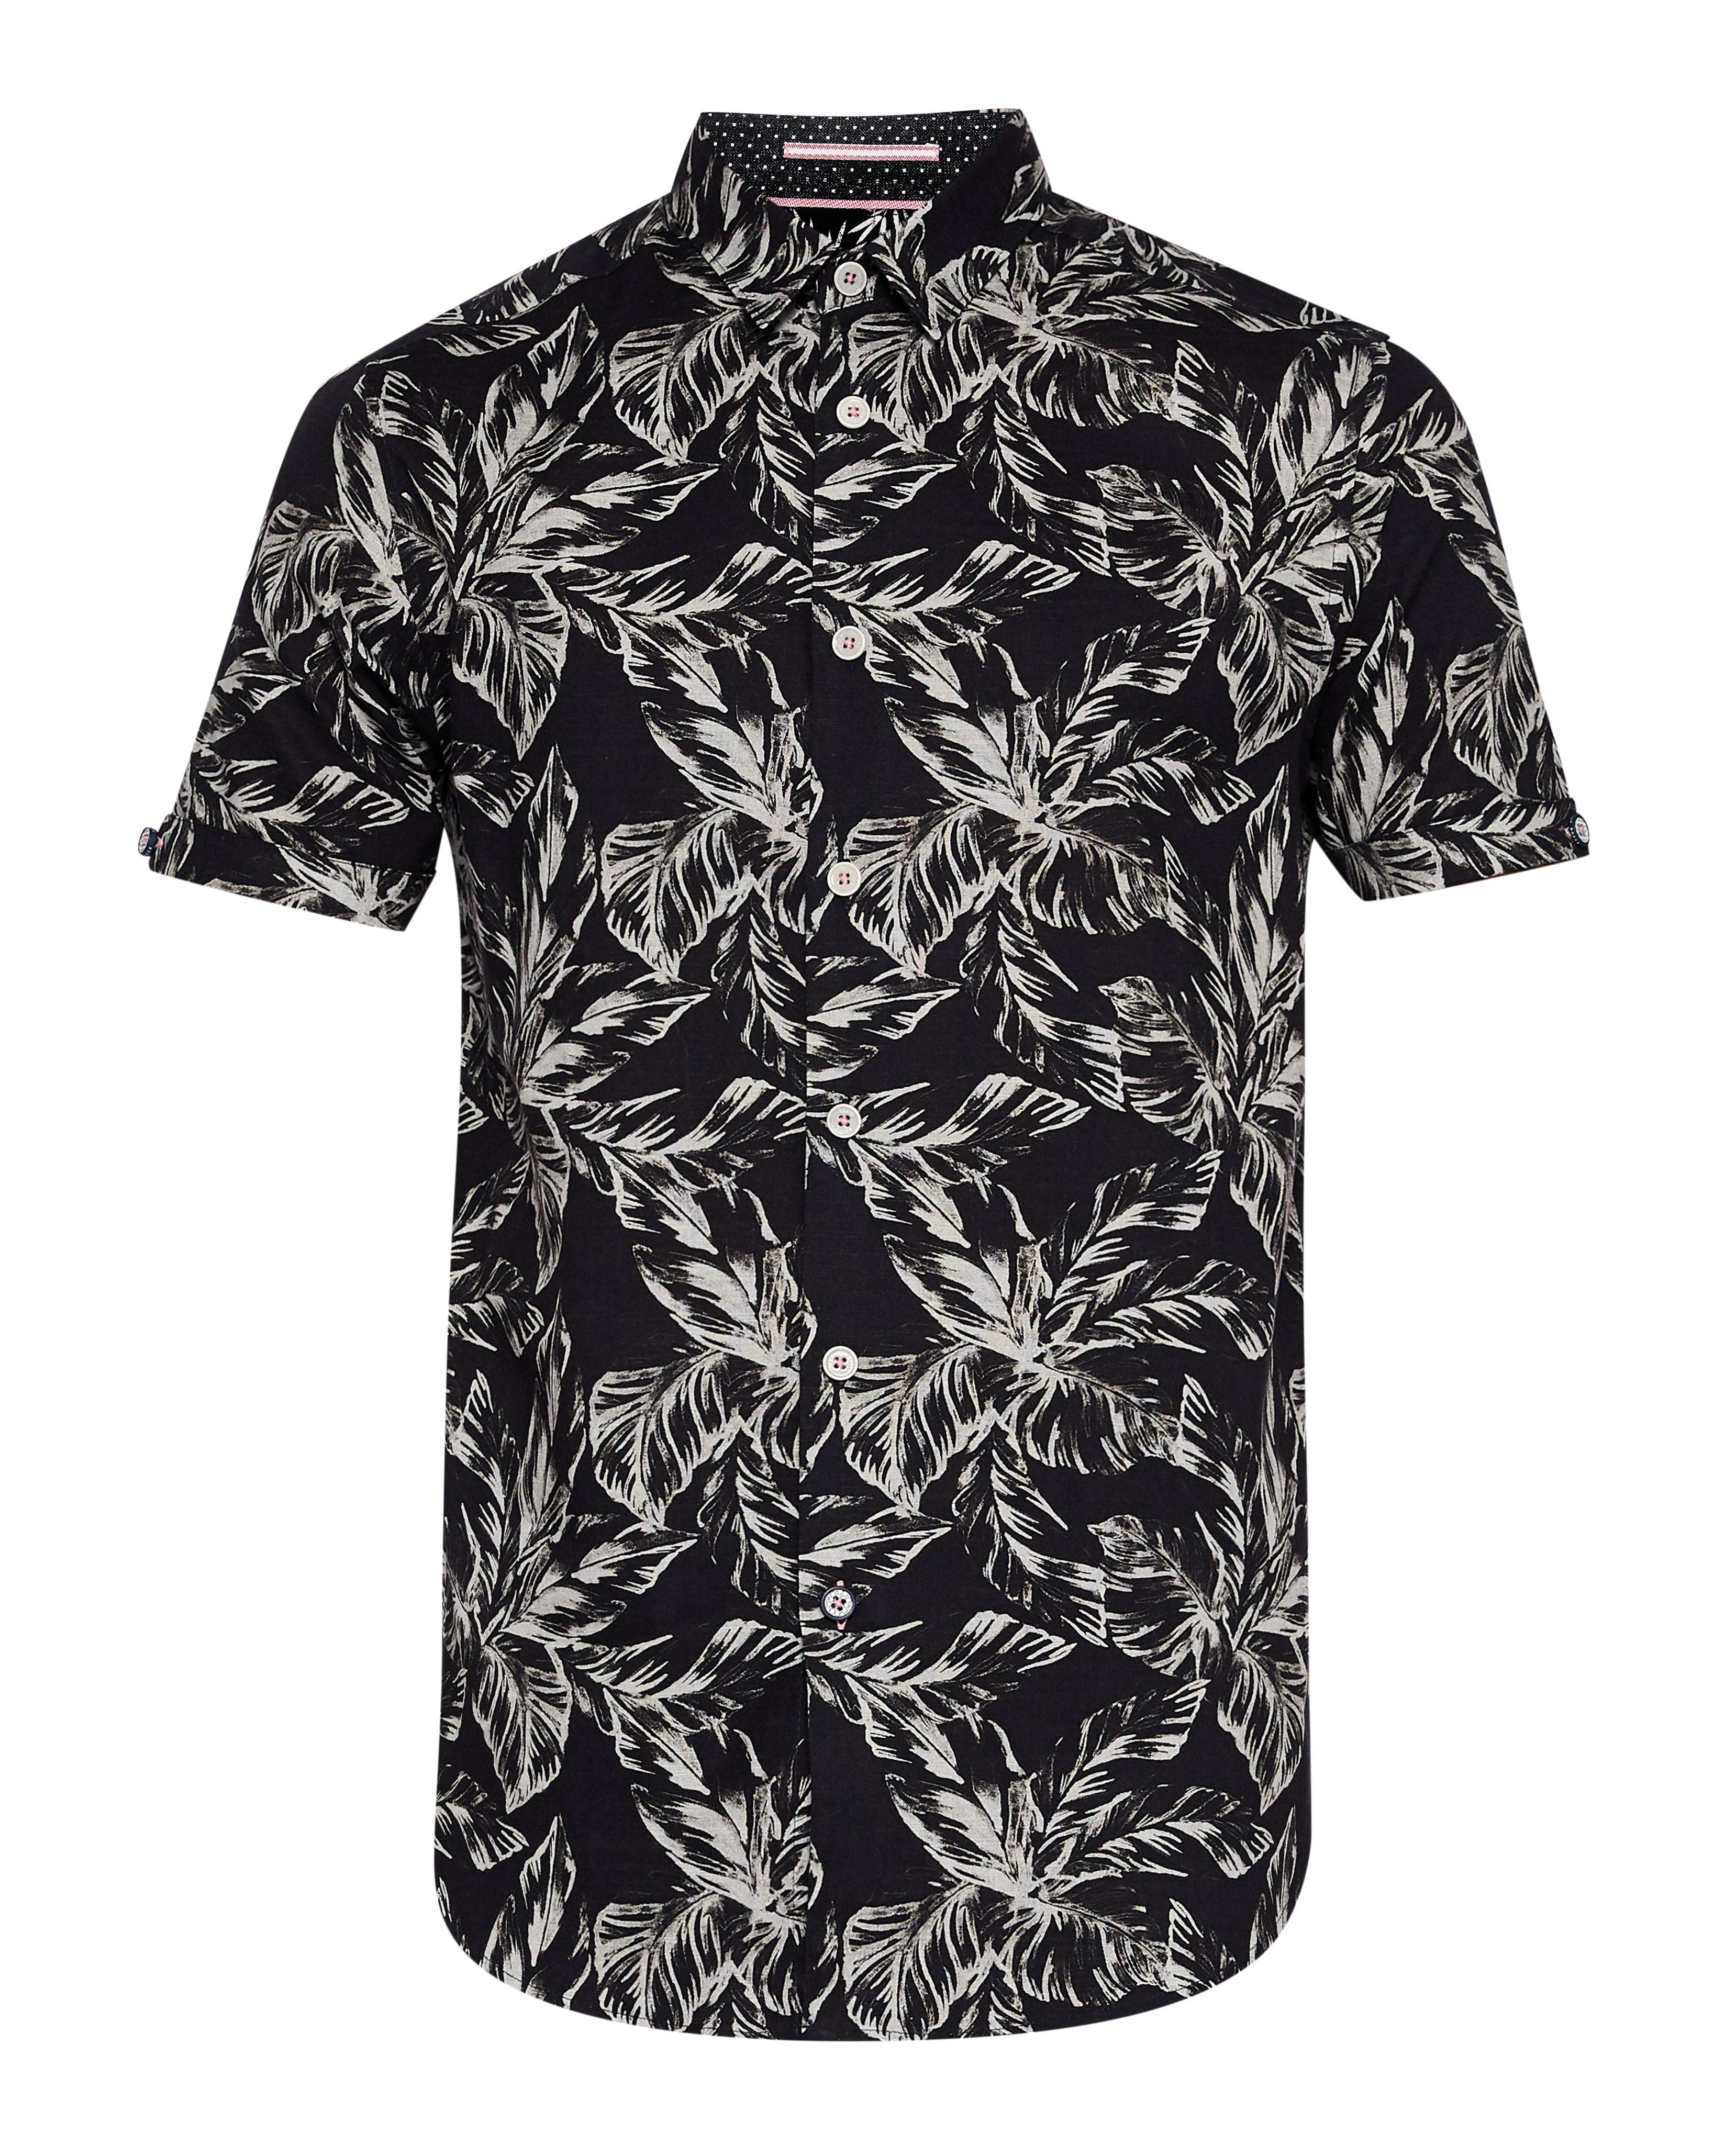 Ted Baker, Twinnie shirt, was £50 now £35